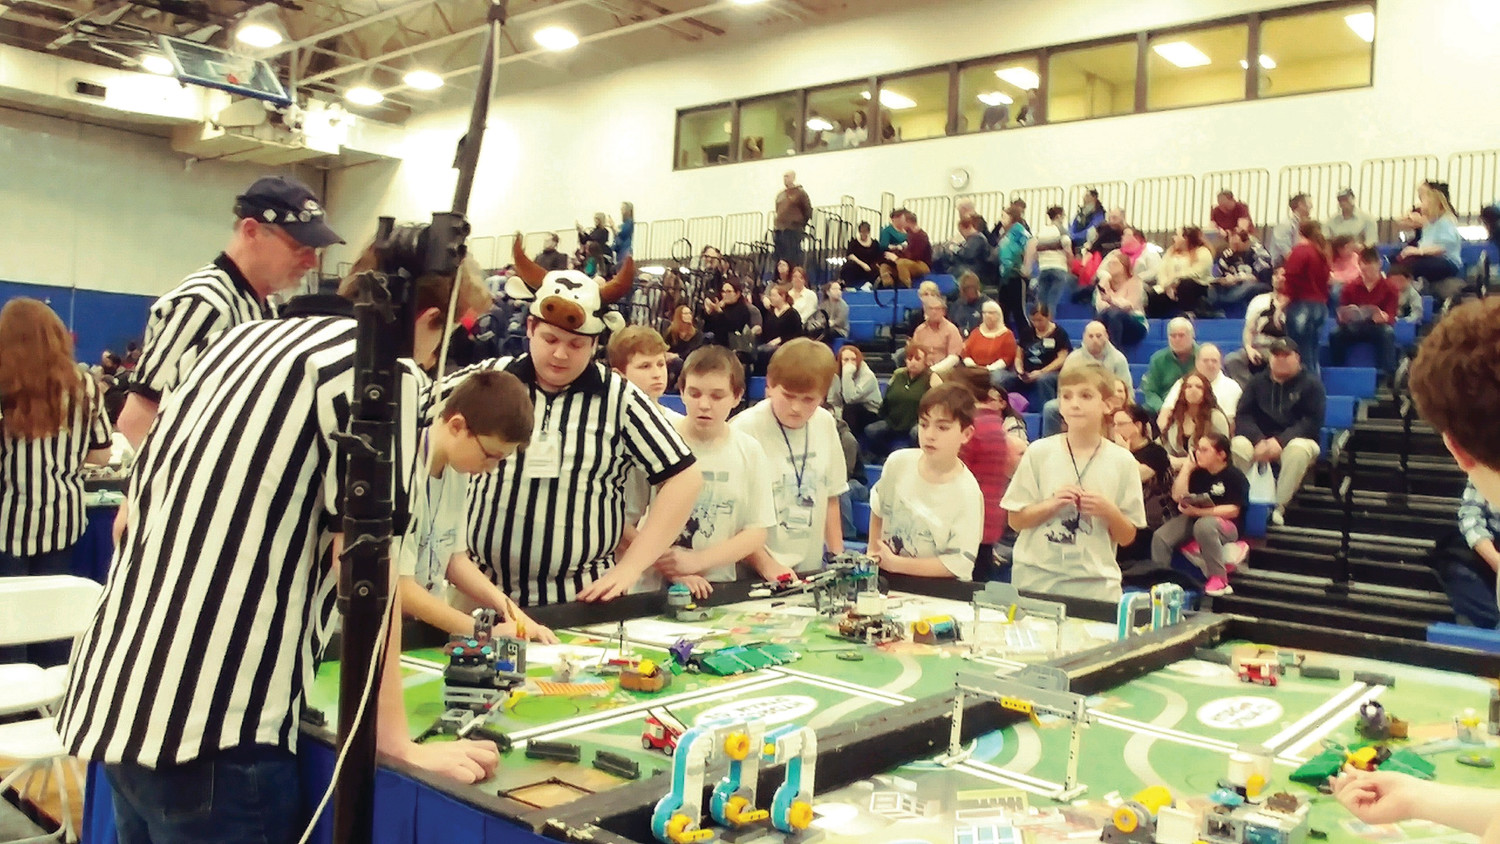 MIXING LEGO AND LOGIC: Tech Tsunami, Evan Franchina Christian Butera (from Warwick), Mark Andraka, Levi Burdon (from Warwick), Blake Sykes, Henry Wind, of Our Lady of Mercy in East Greenwich tally up the score with the referees during Rhode Island Students of the Future's FIRST LEGO League state championship on Saturday, January 13, at Roger Williams University. The team won the 1st place Robot Programming award for the code that used logic blocks to improve reliability and repeatability.